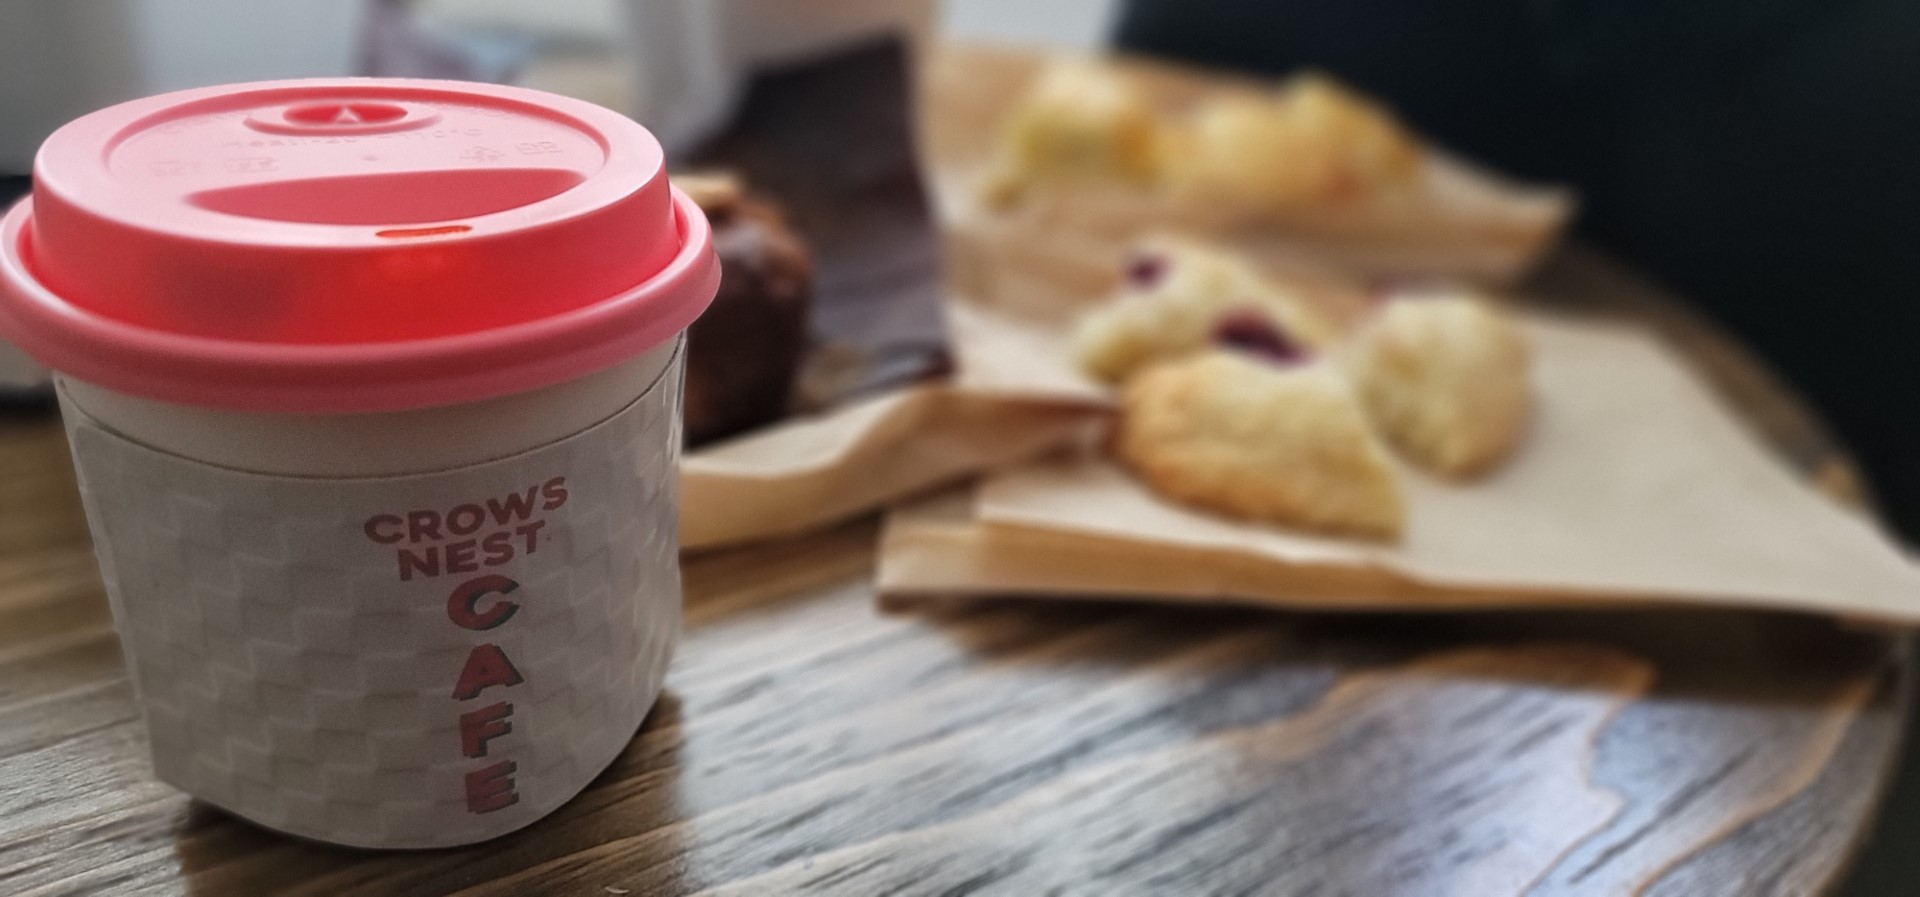 pink lid on coffee cup with words Crows Nest